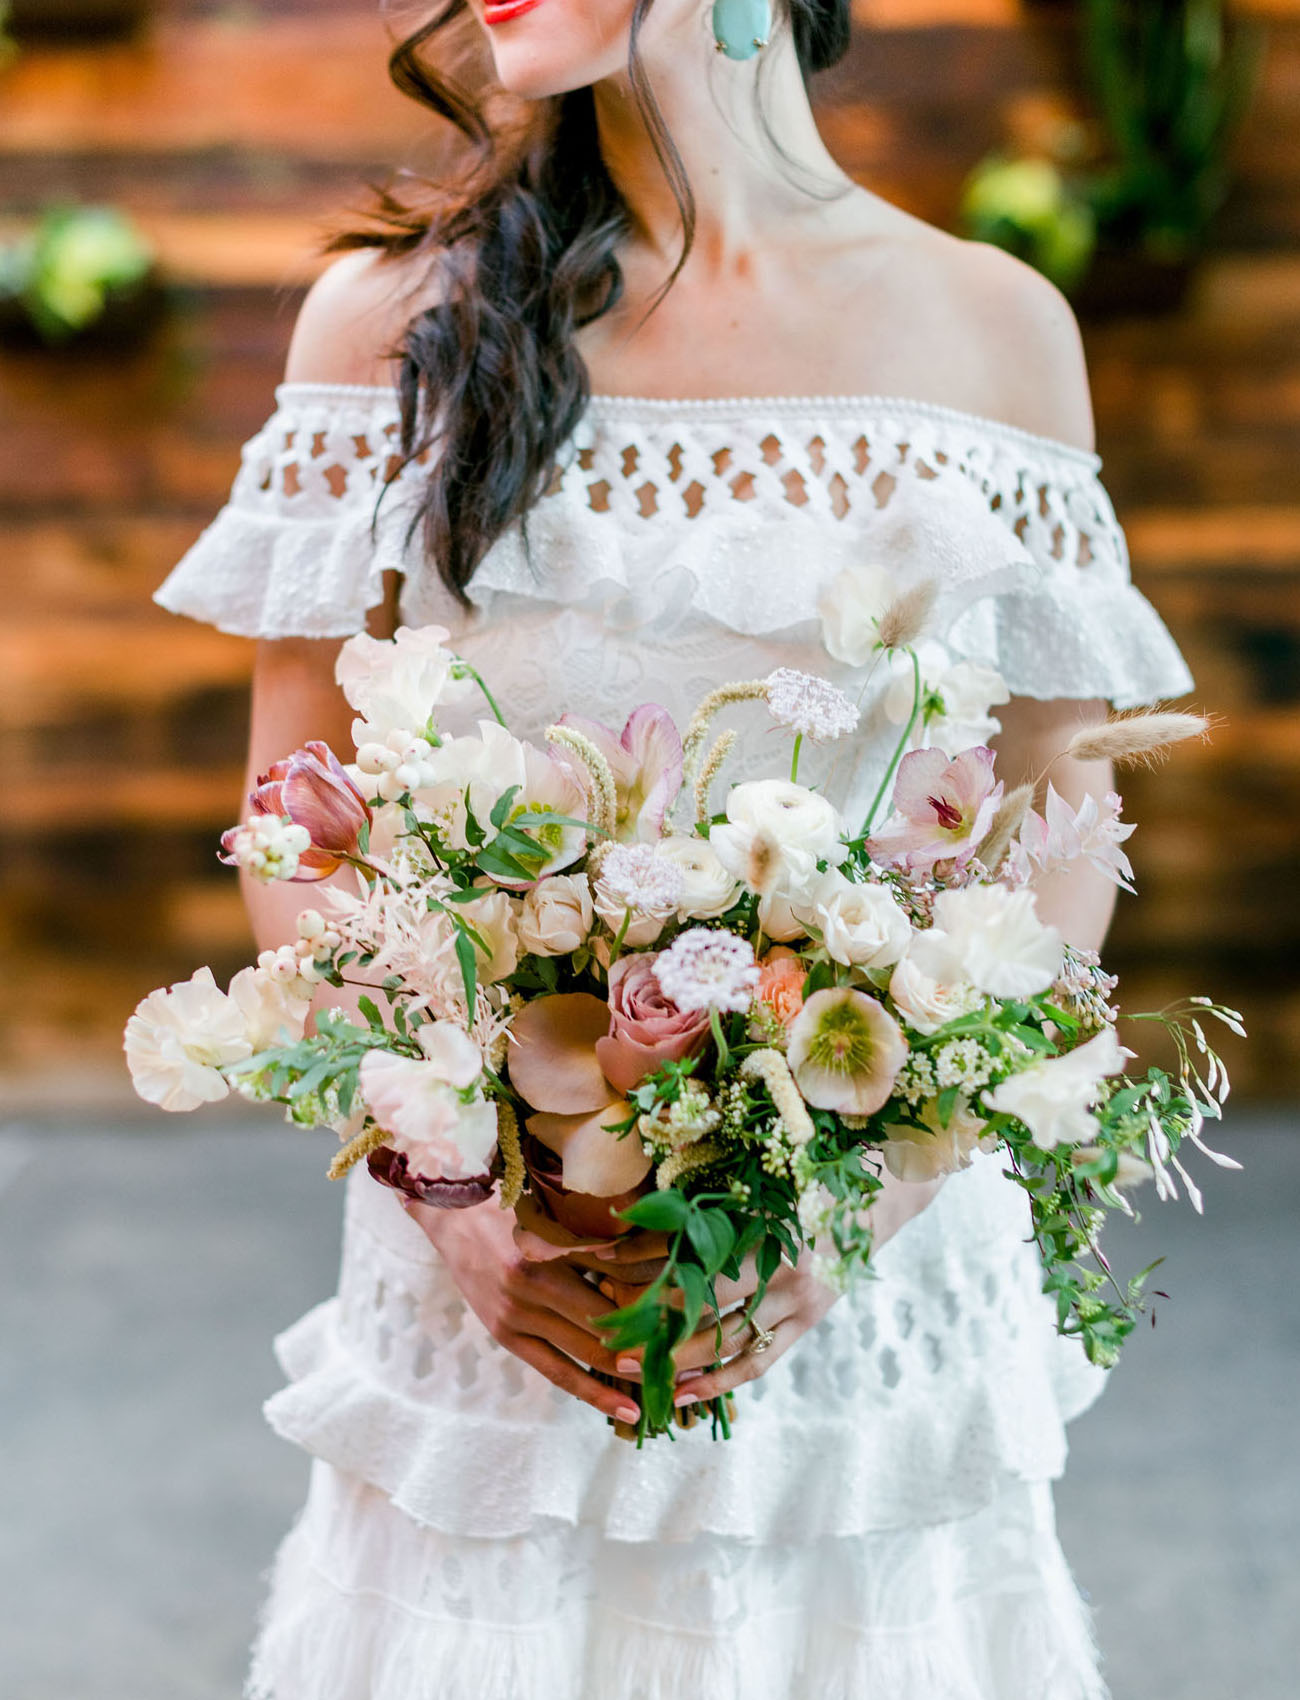 The wedding bouquet was done with white, blush and dusty pink blooms and greenery